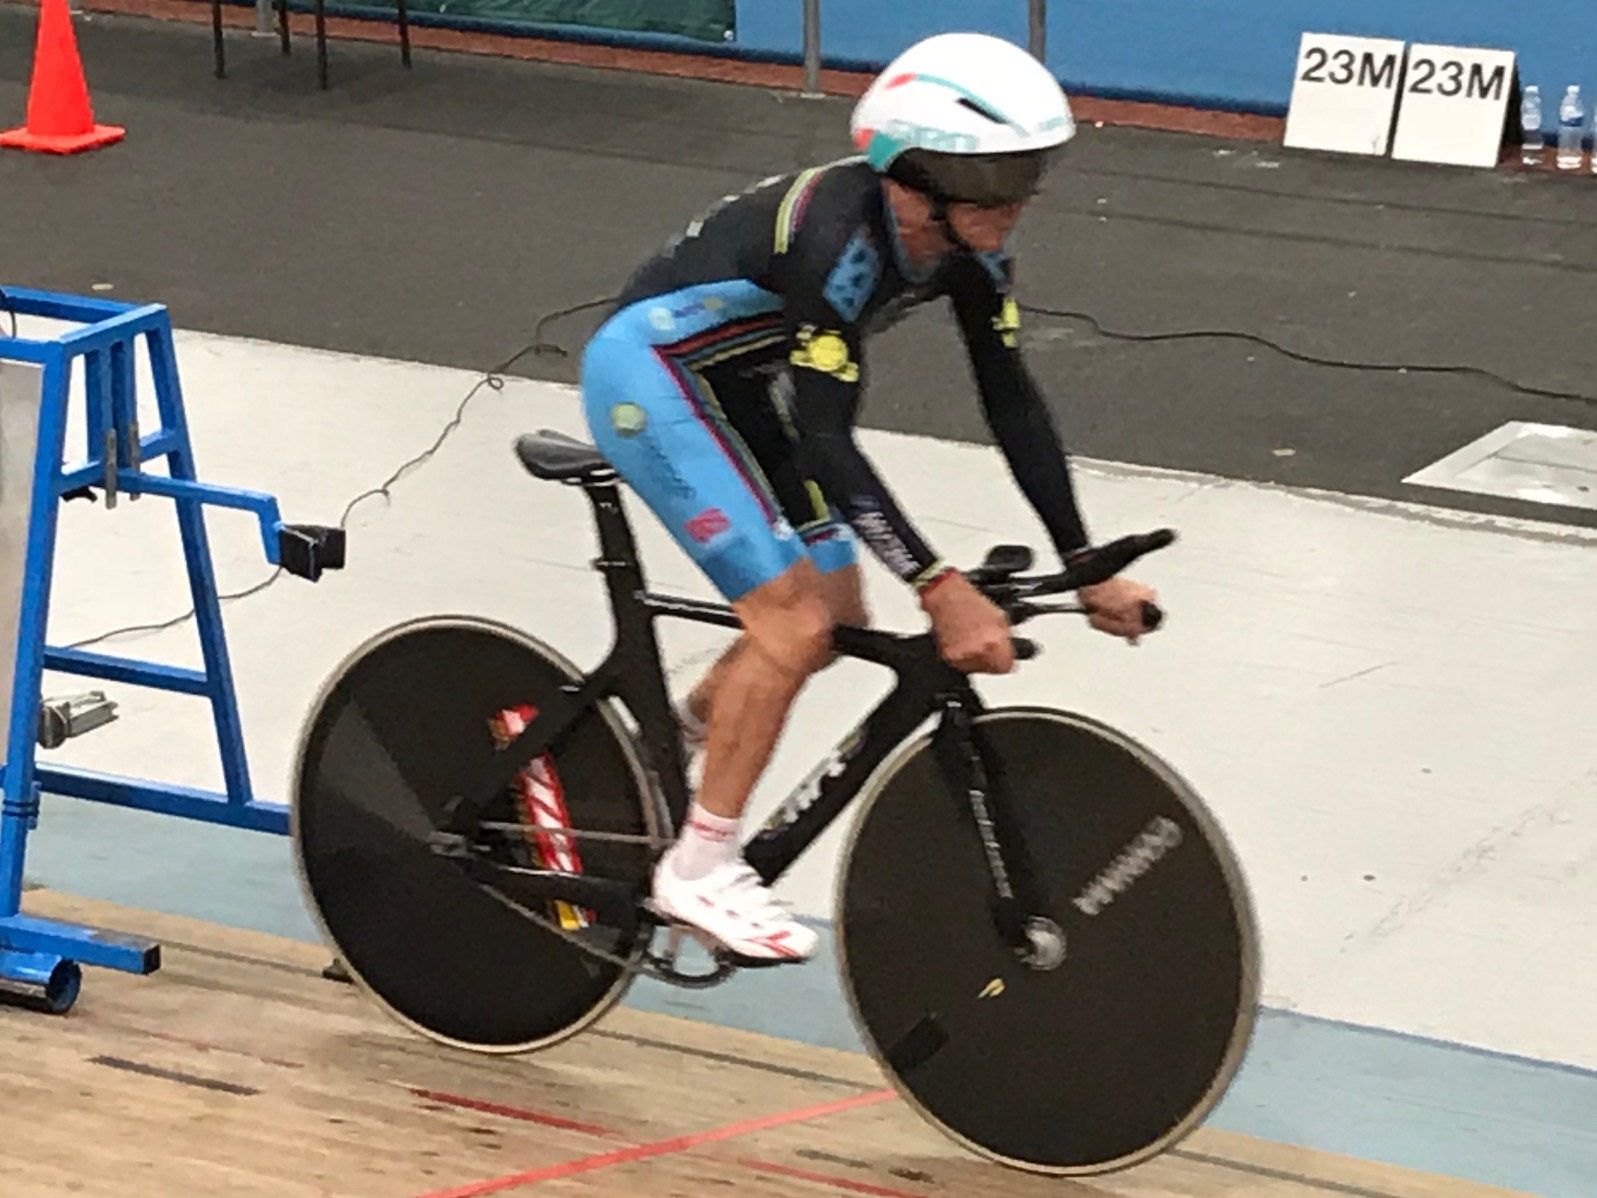 National Masters Track Championships 18 @ Melbourne - Mike Lawson launches from the starting gates in the M7 Individual Pursuit. Mike finished 4th in a close fought M7 final.